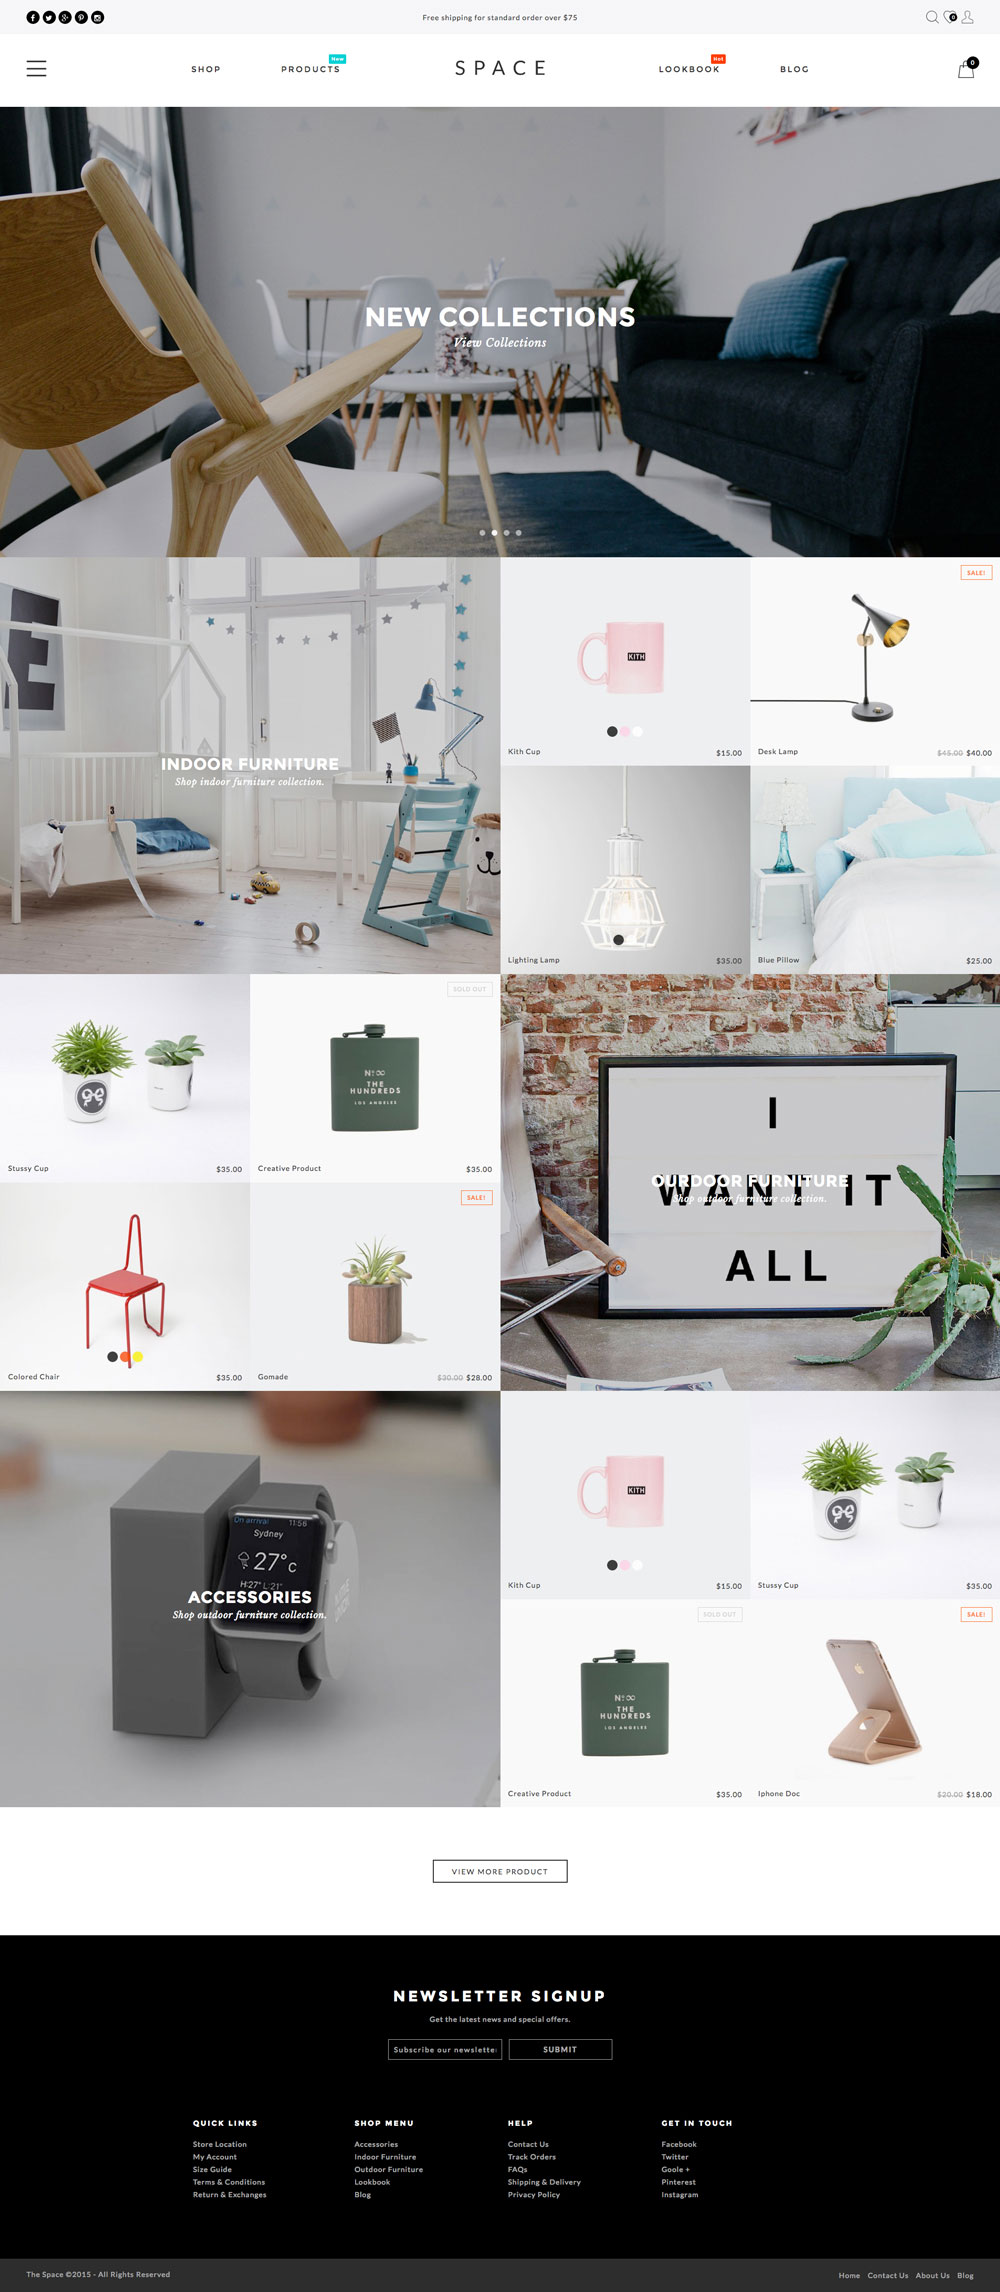 5 Best SHOPIFY Premium themes collection for Furniture Store - Space - Minimalist, Clean - Furniture, Fashion Shopify Theme